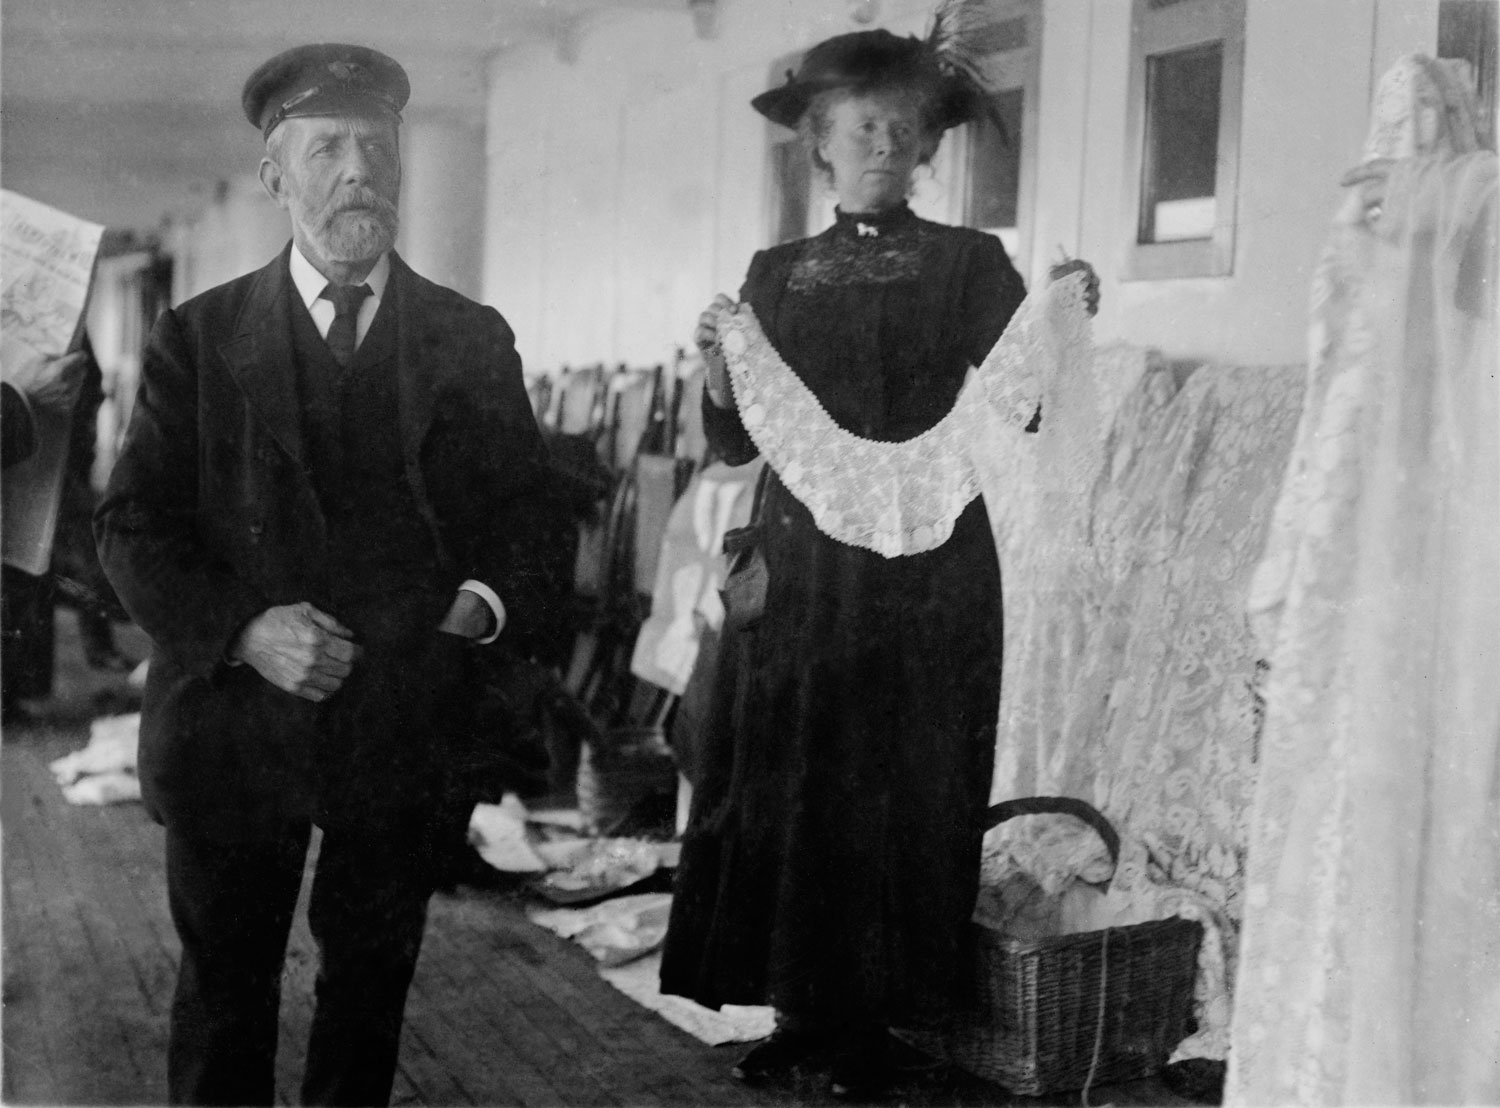 Woman selling Irish lace aboard the Titanic, April 11, 1912.